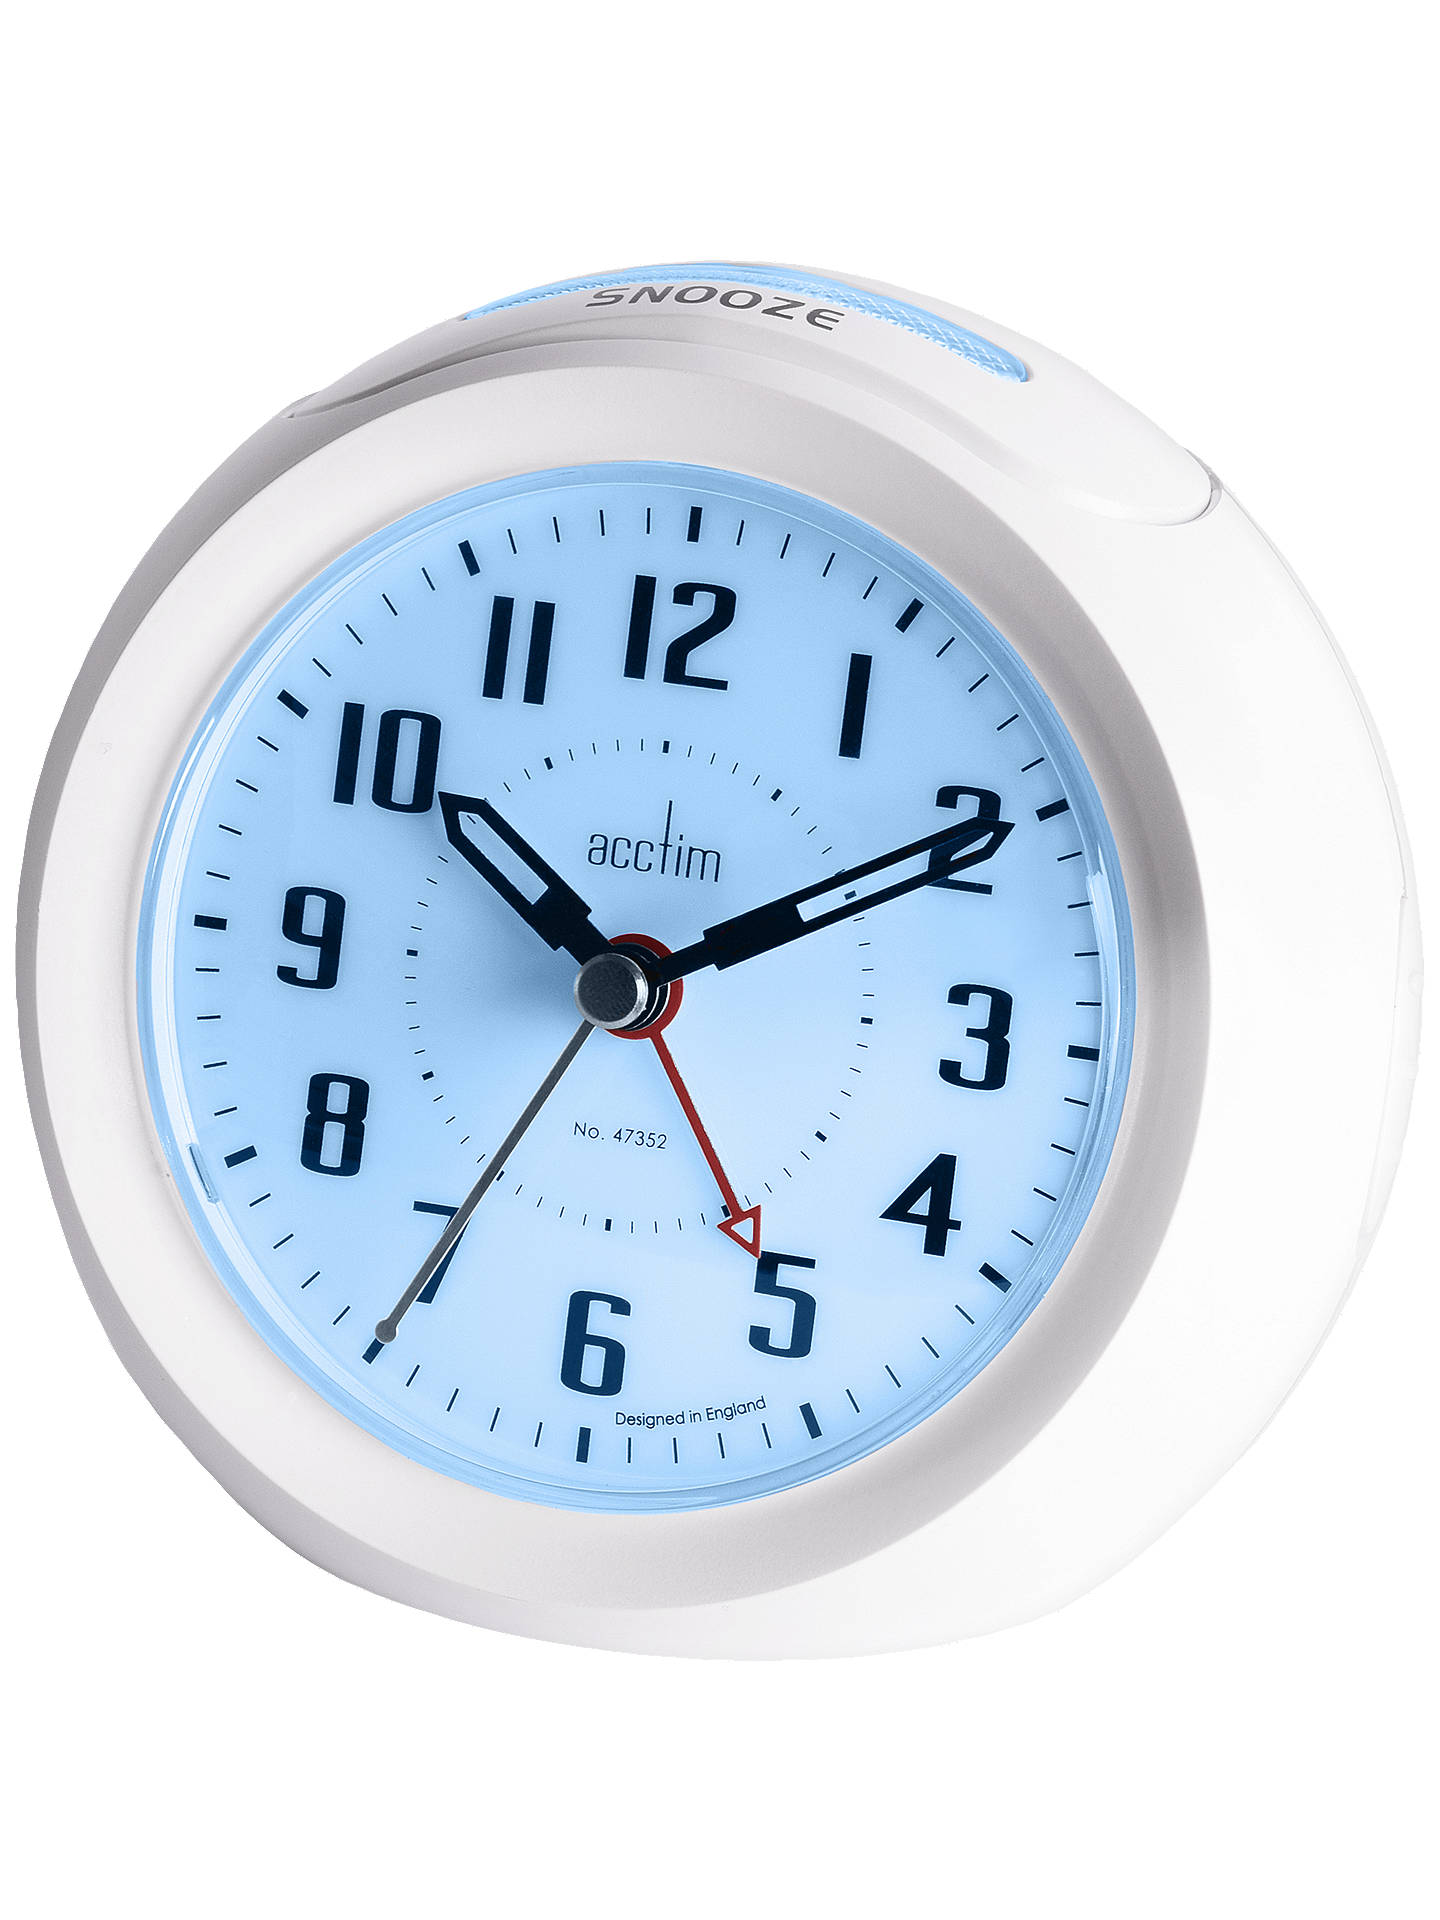 BuyAcctim Minos Smart Connector® USB Alarm Clock, White Online at johnlewis.com